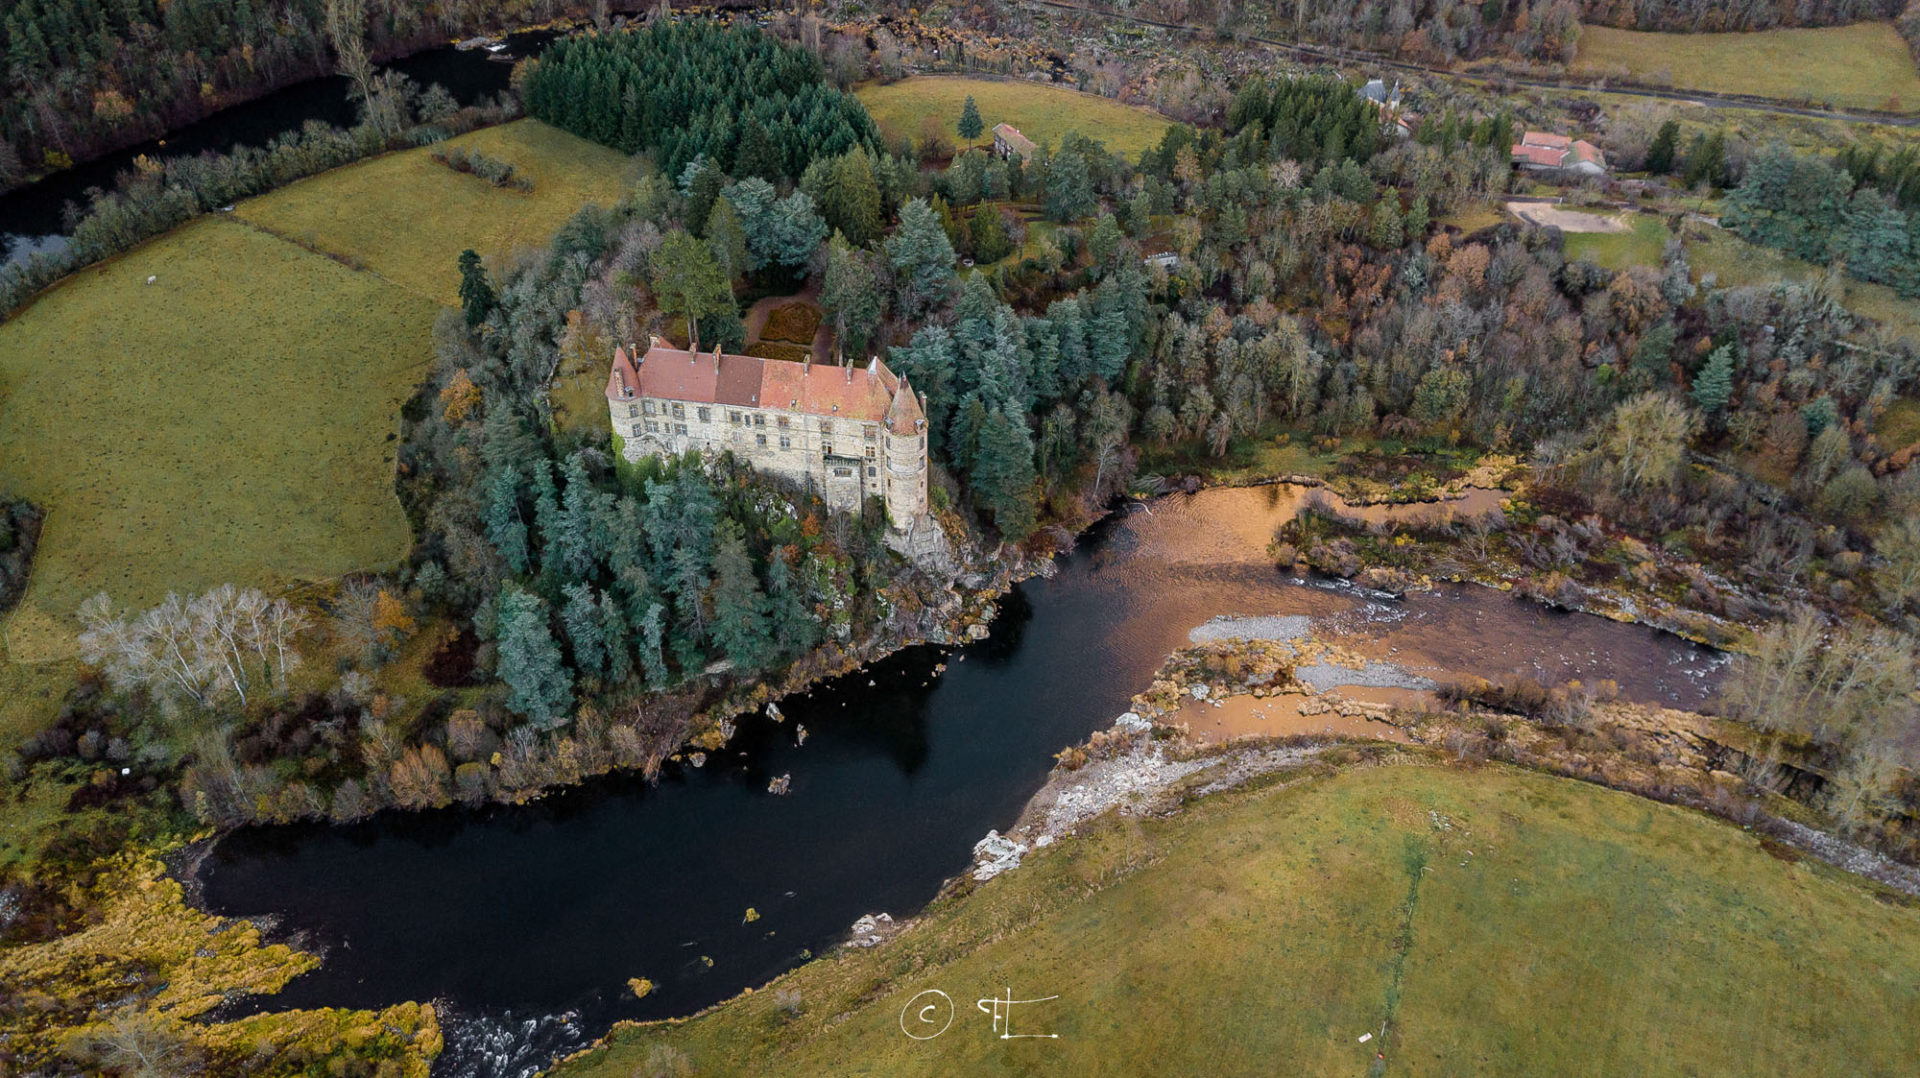 Mavic Chateau lavoute nov 171